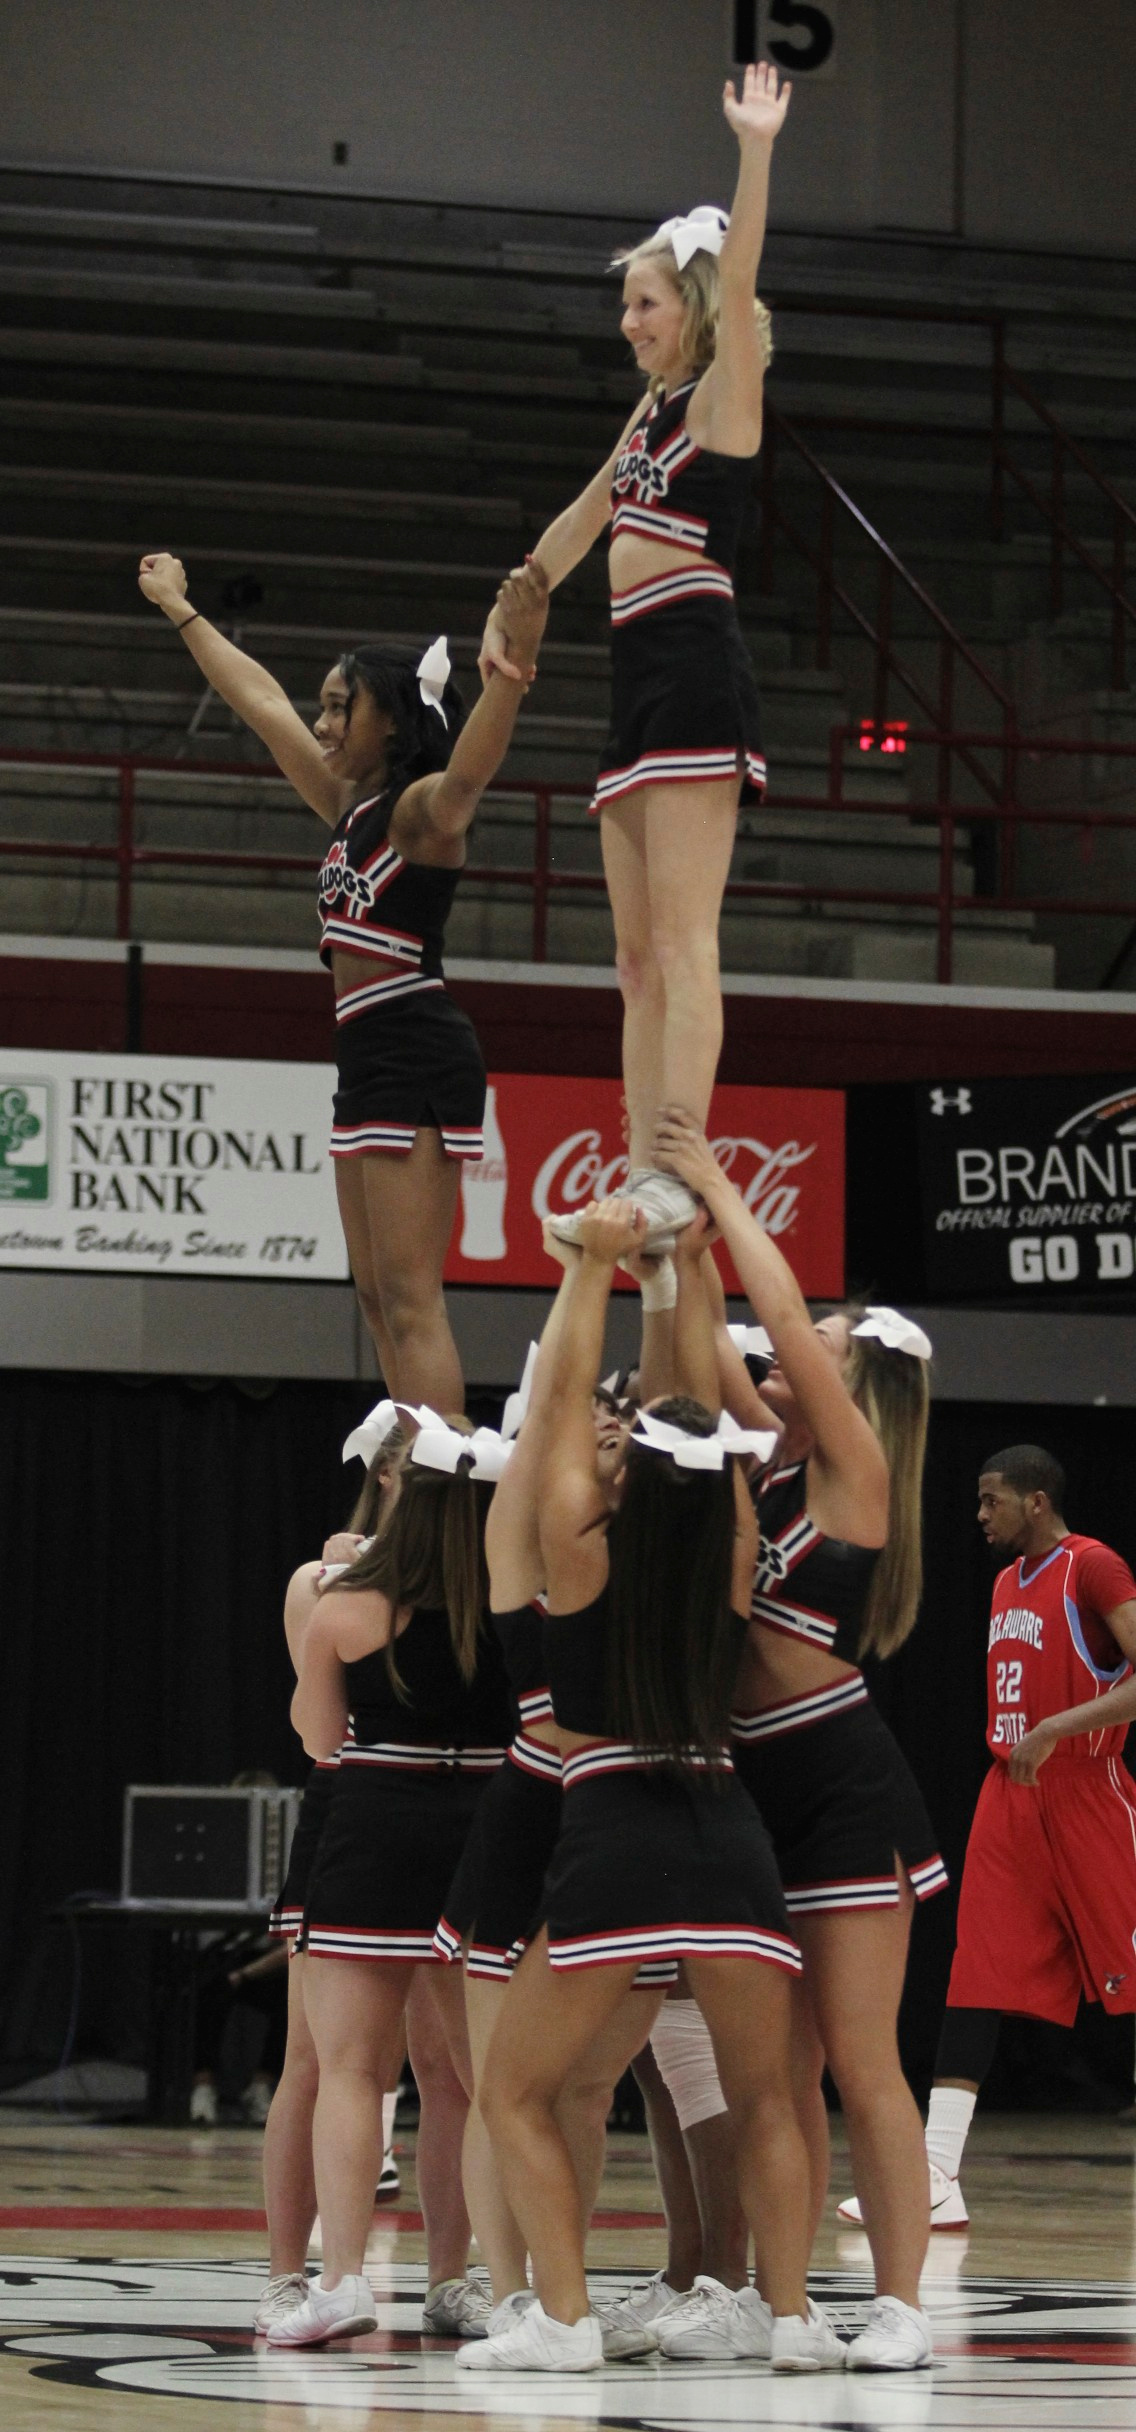 The Gardner-Webb Cheerleaders perform a stunt during a time-out